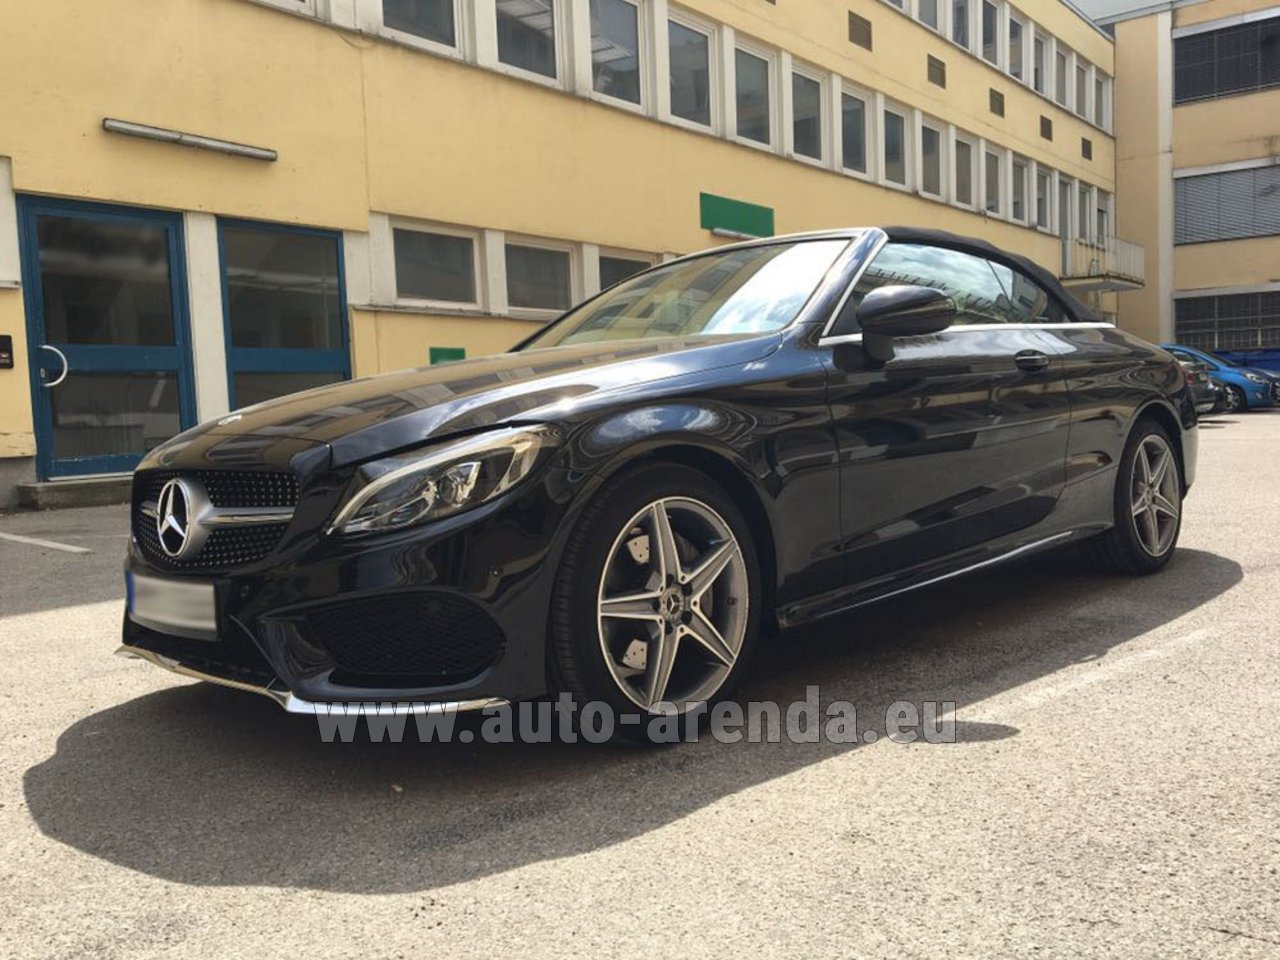 monaco ville mercedes c class c 180 cabrio amg equipment black rental. Black Bedroom Furniture Sets. Home Design Ideas